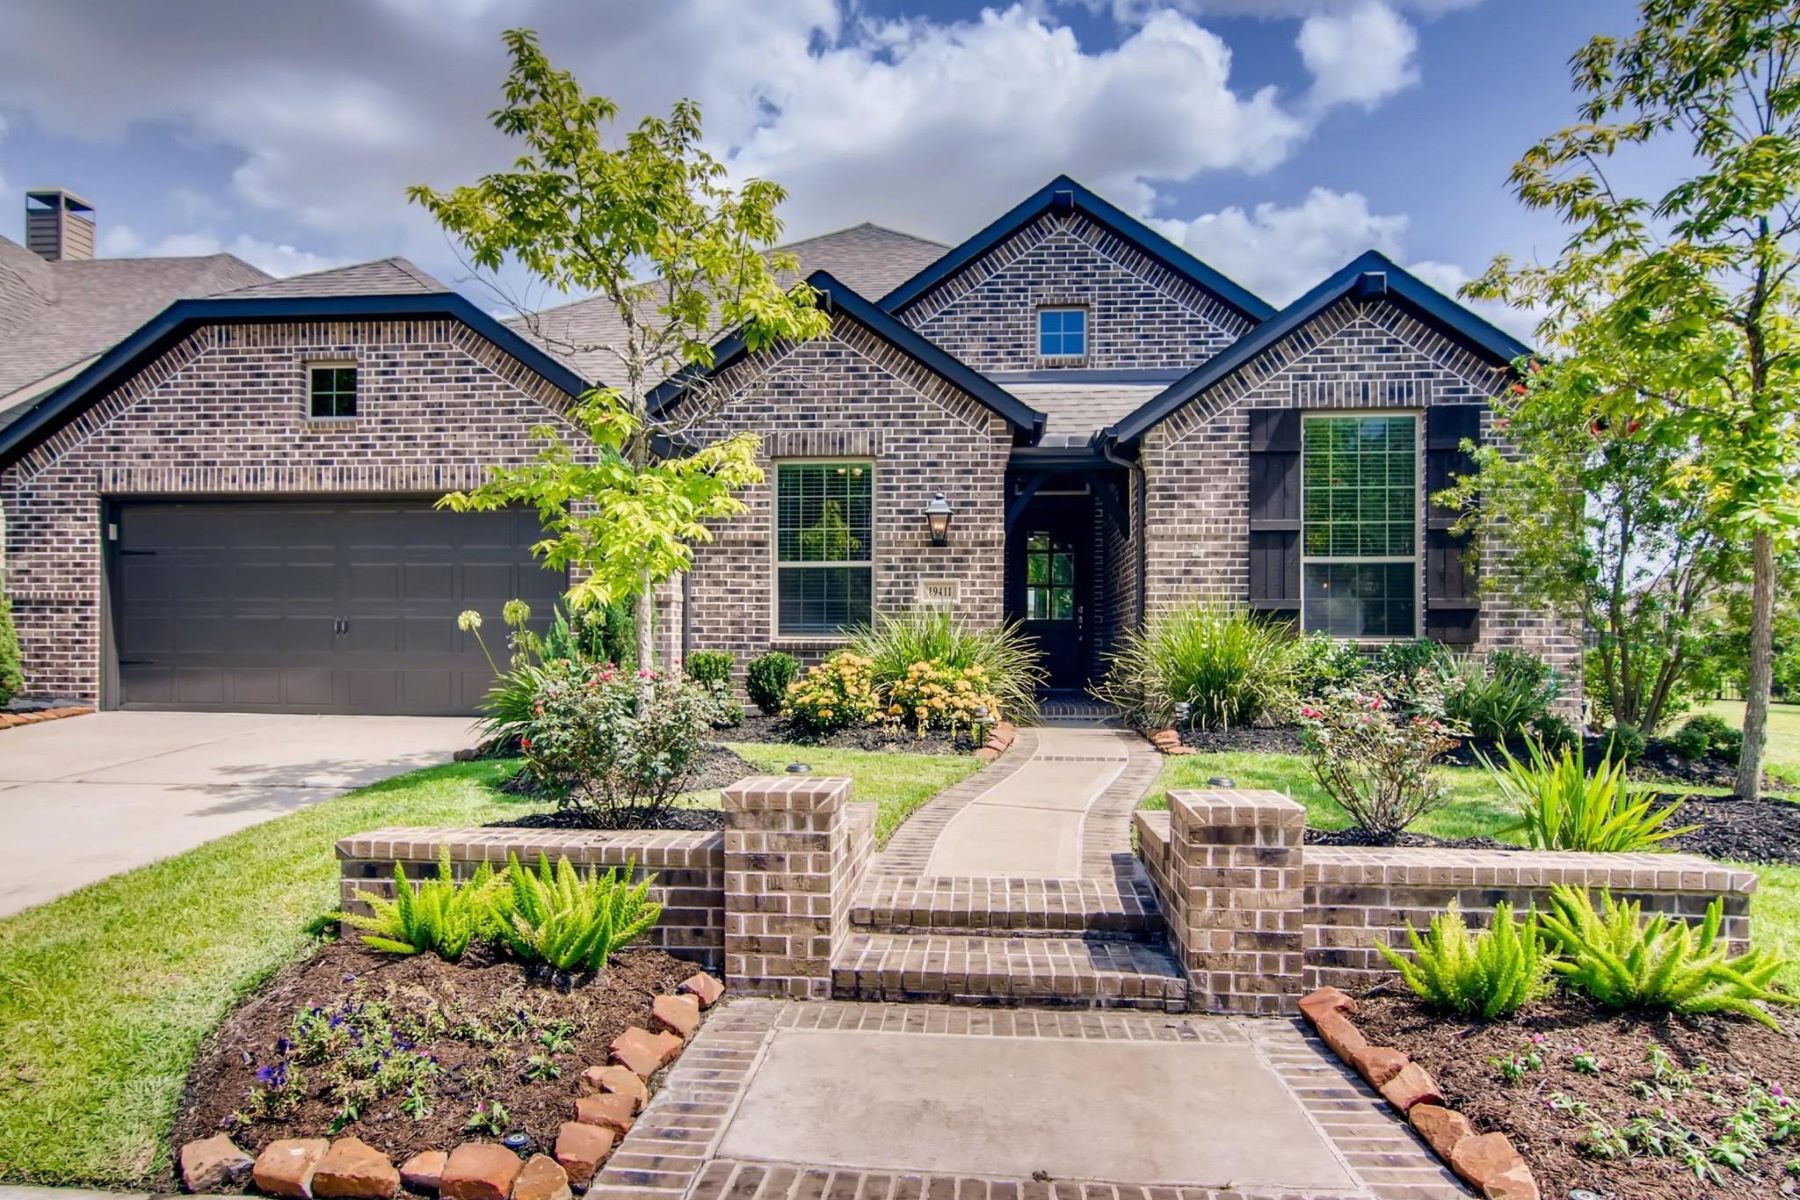 Single Family Homes for Sale at 19411 Trinity River Drive Cypress, Texas 77433 United States